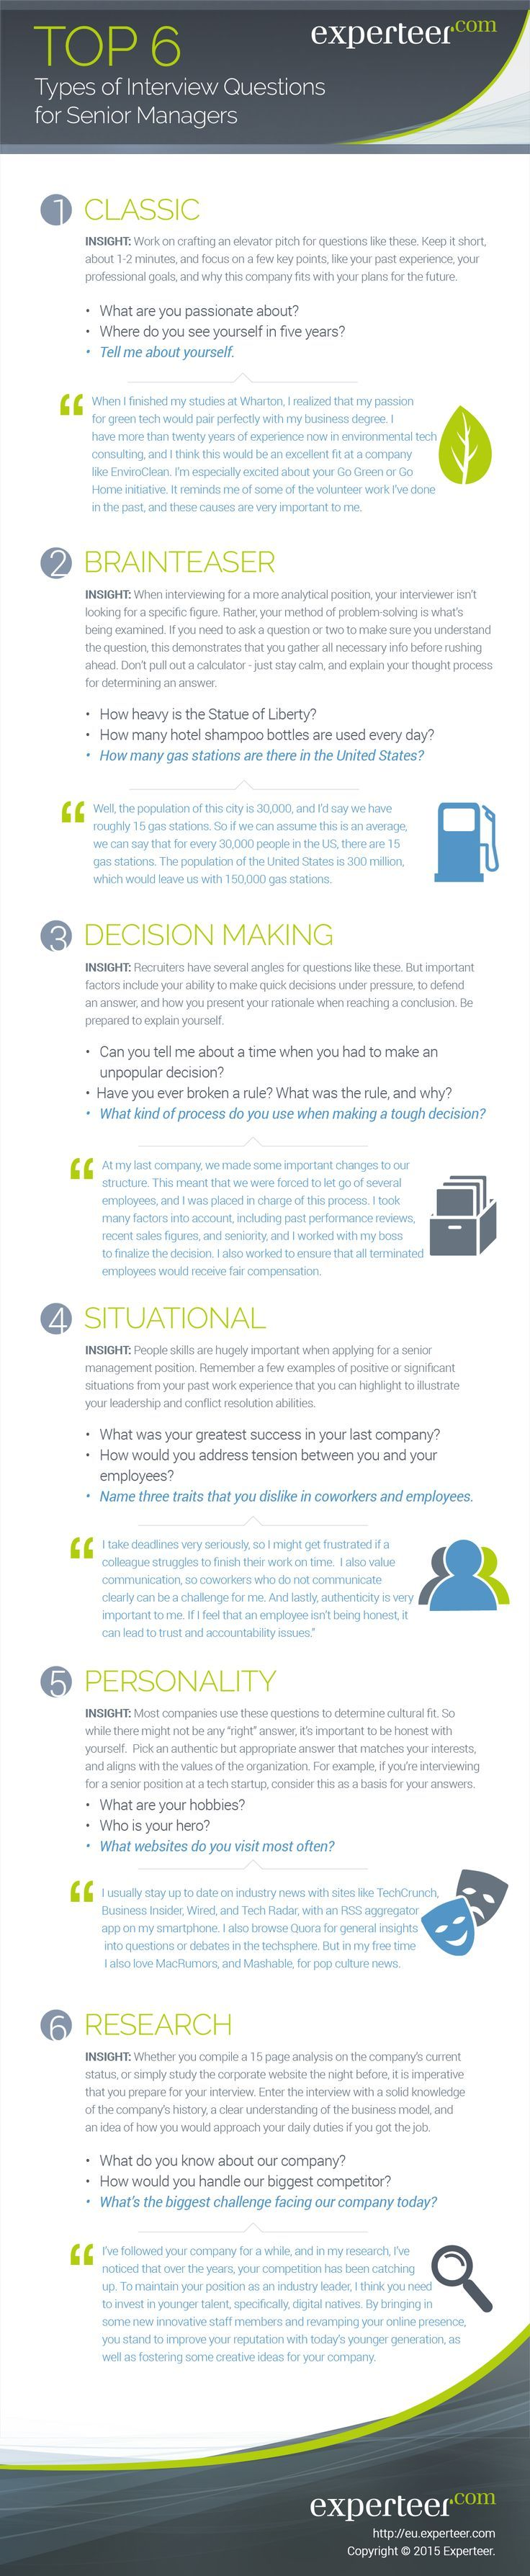 Management The Top 6 Most Common Interview Questions For Senior